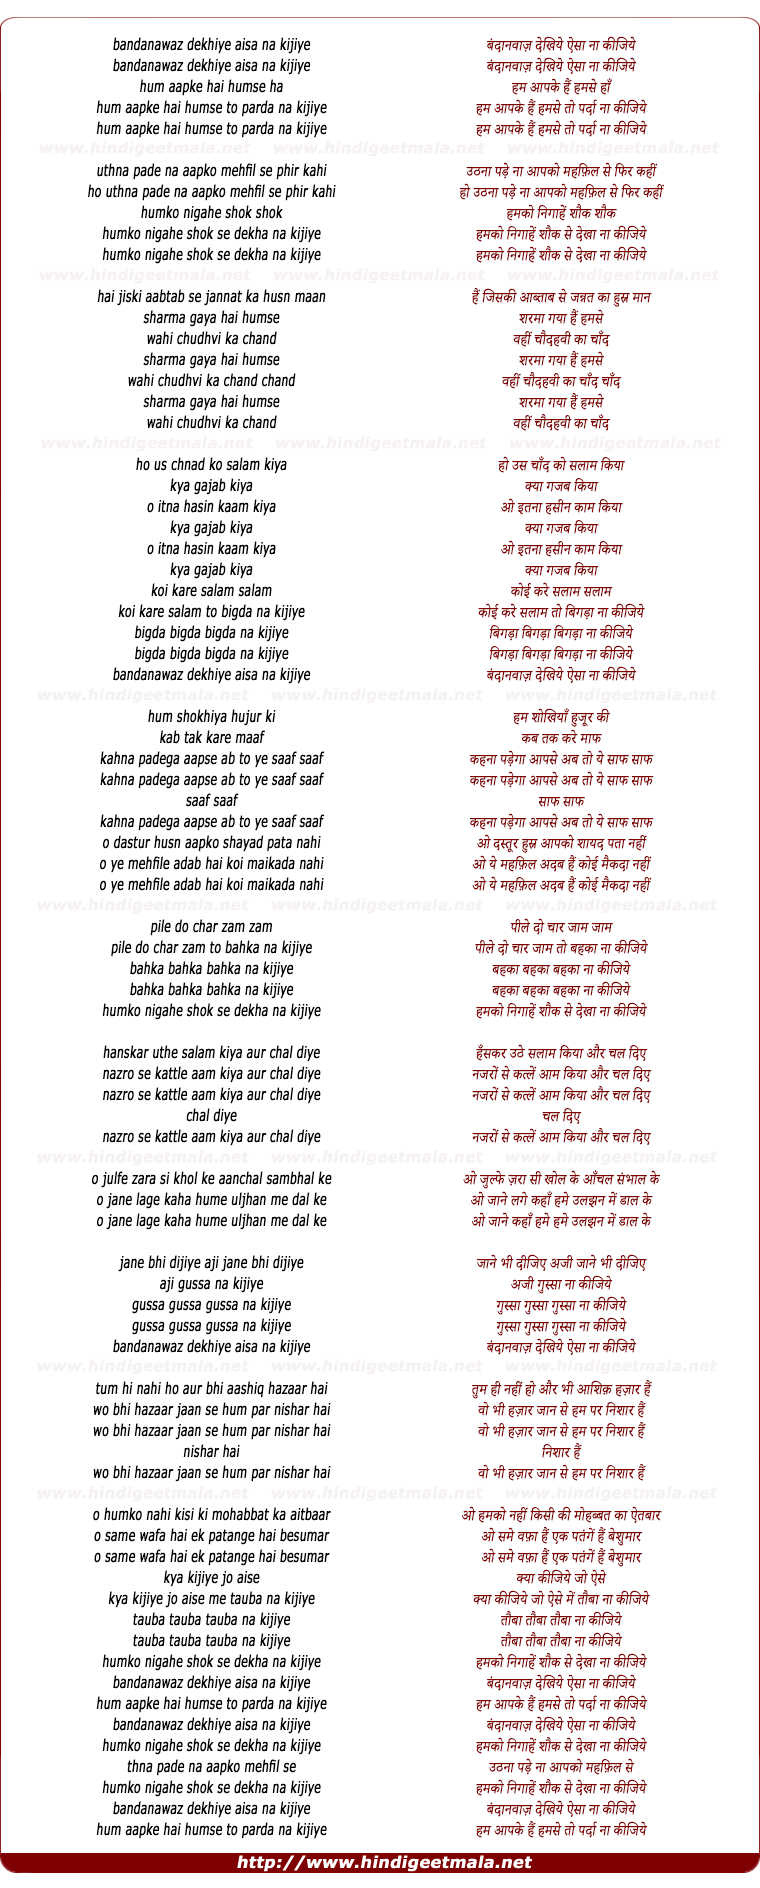 lyrics of song Bandanawaz Dekhiye Aisa Na Kijiye